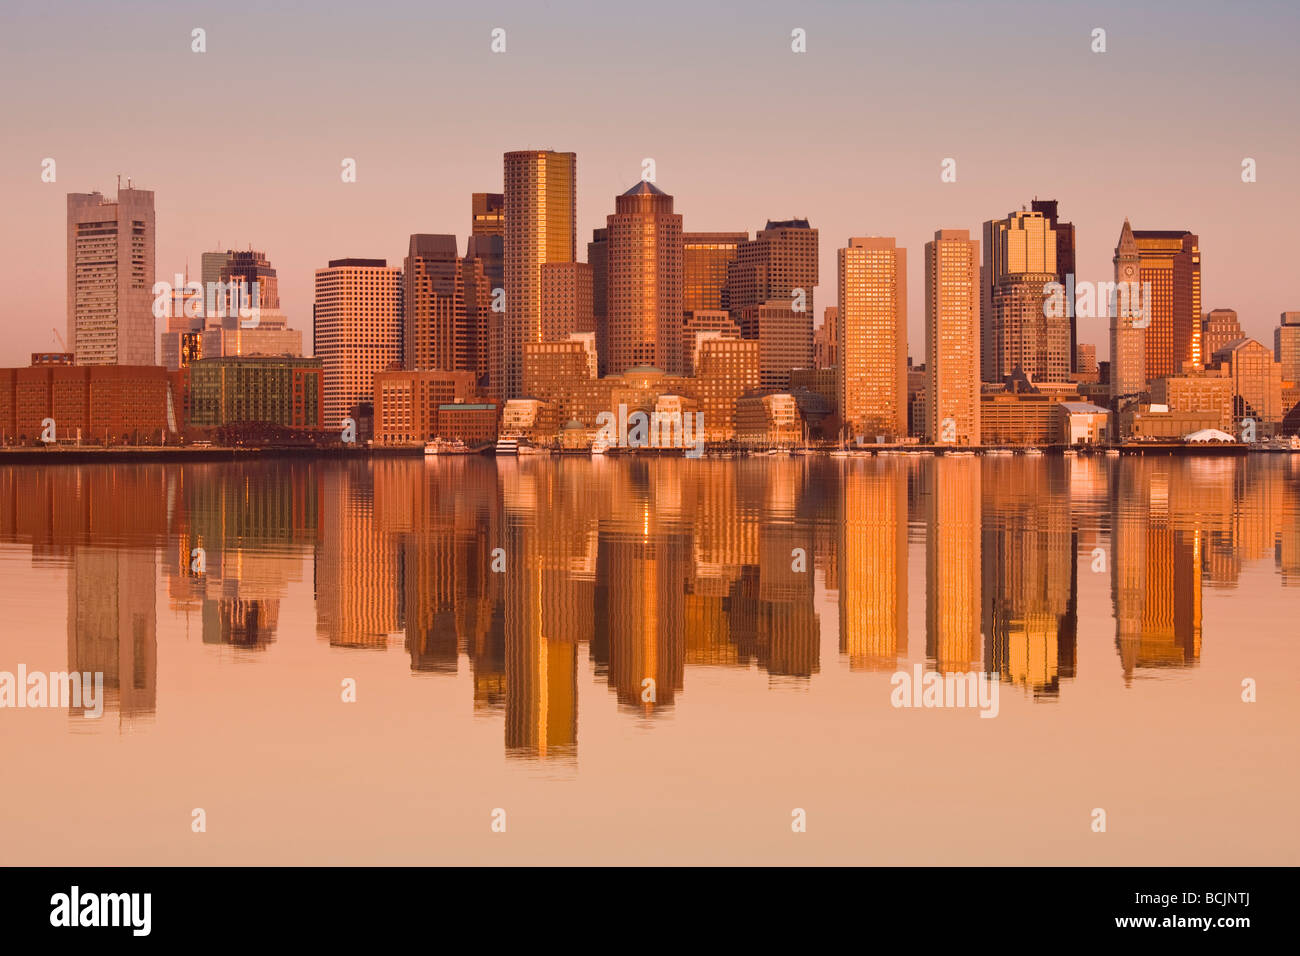 Boston, Massachusetts, EE.UU., el distrito financiero del aeropuerto de Logan, East Boston Imagen De Stock